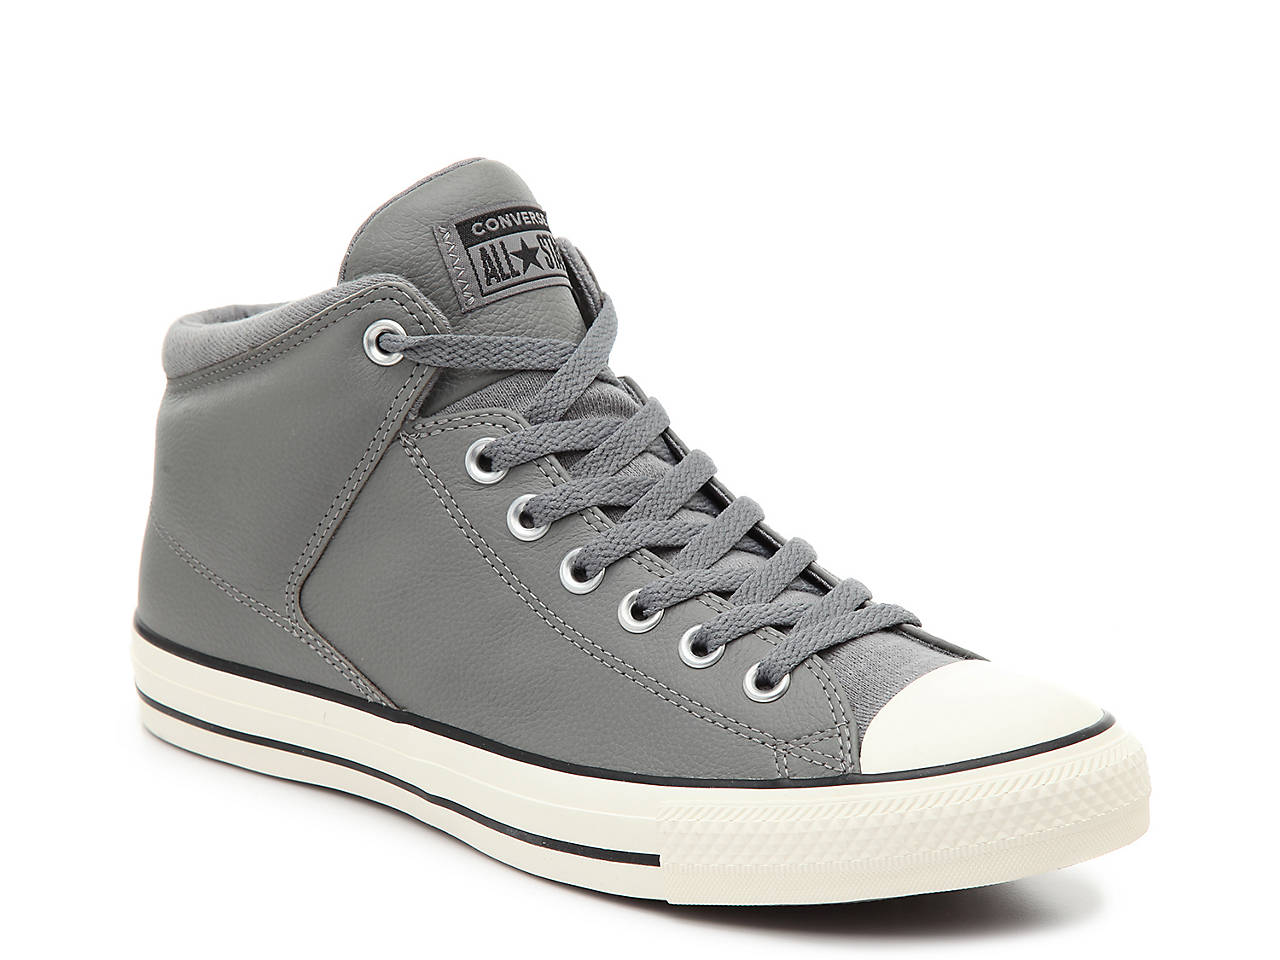 b770a7ff7d2b6 Chuck Taylor All Star Hi Street Leather High-Top Sneaker - Men's